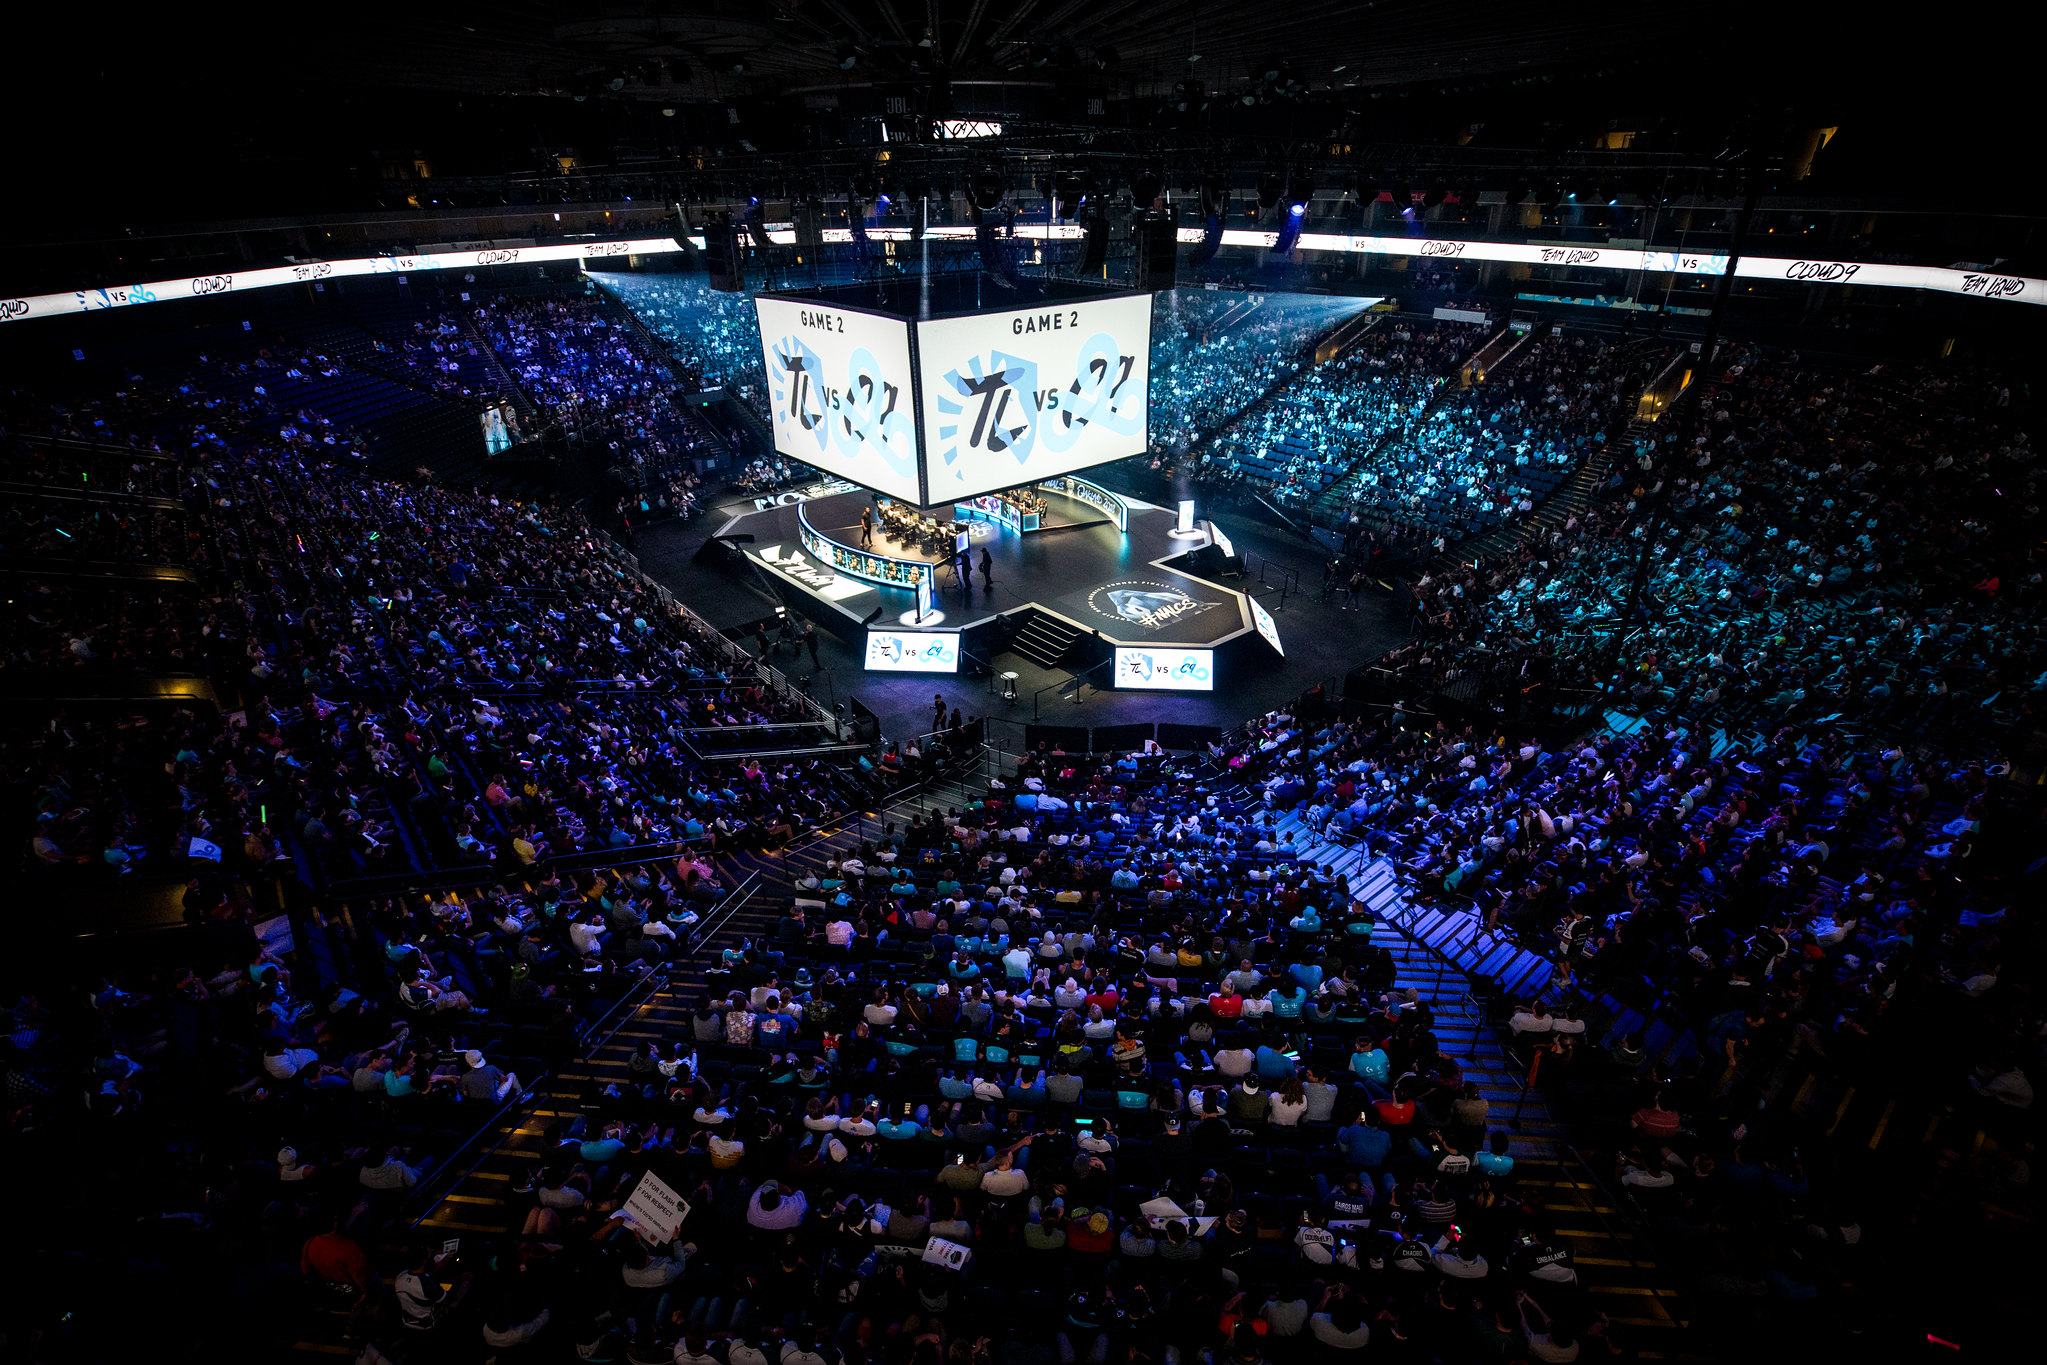 The 2019 LCS Summer Split finals will be held in Detroit